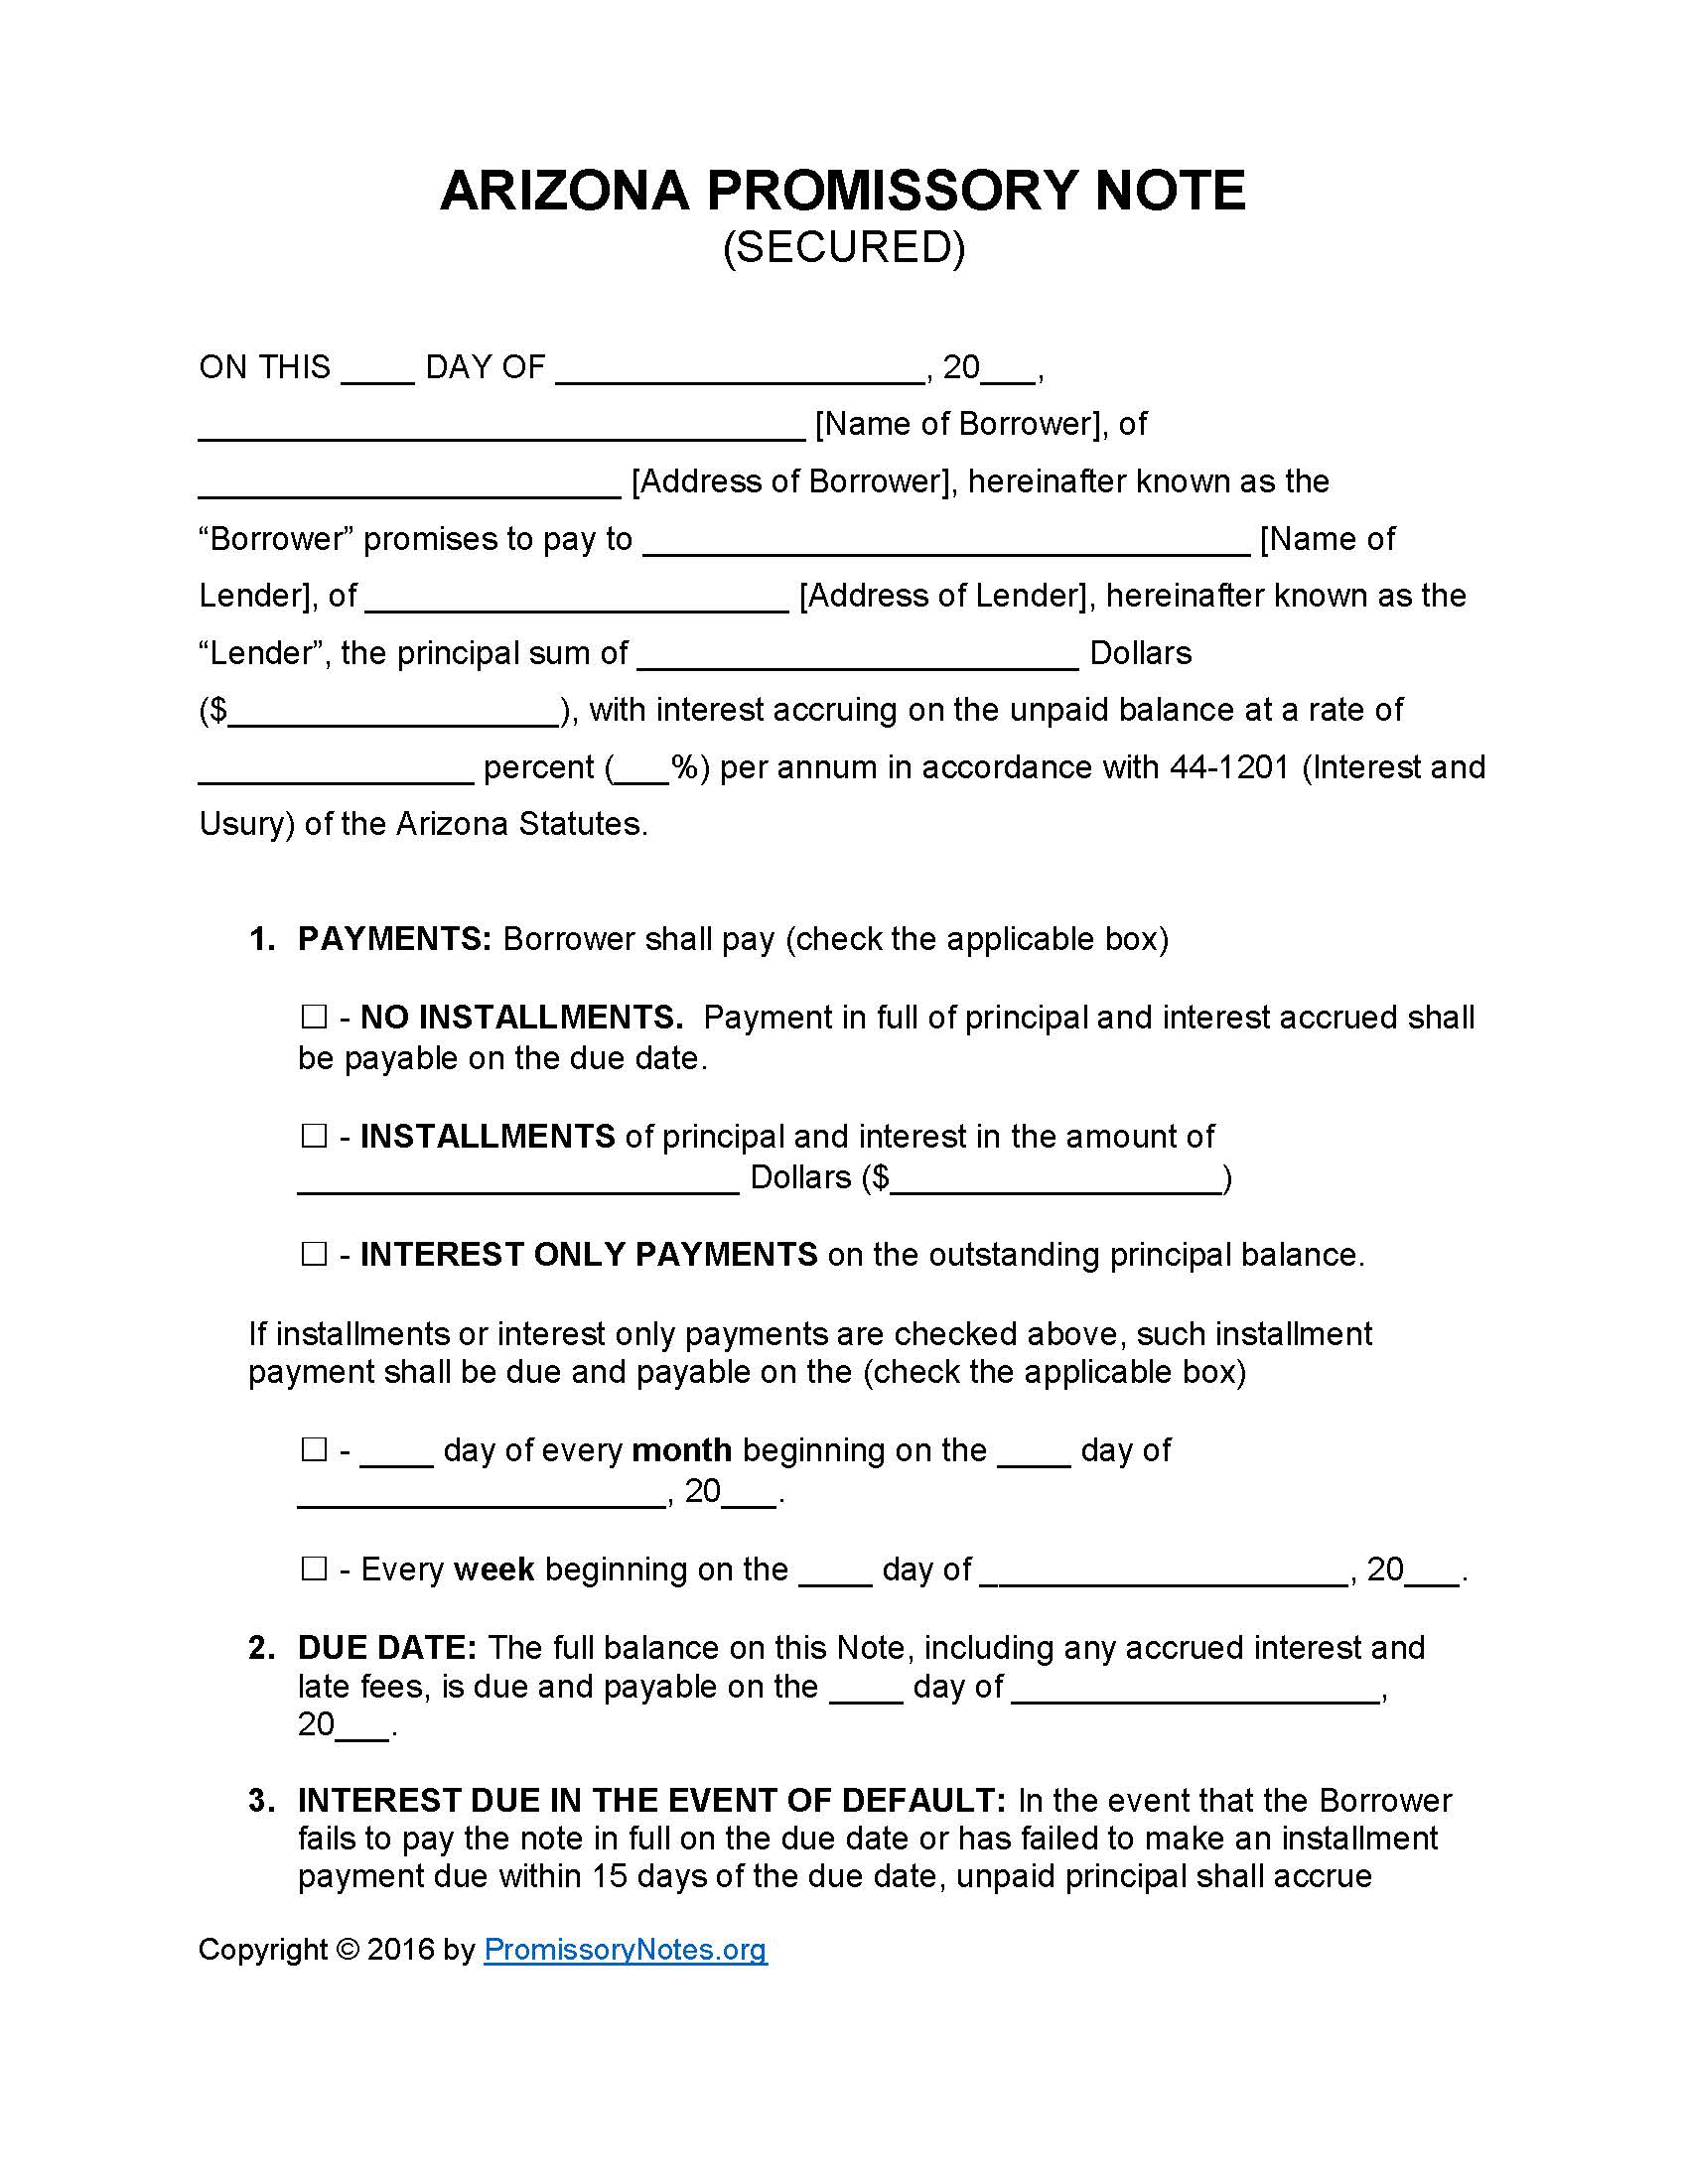 Arizona Secured Promissory Note Template Promissory Notes - Promissory note with interest template